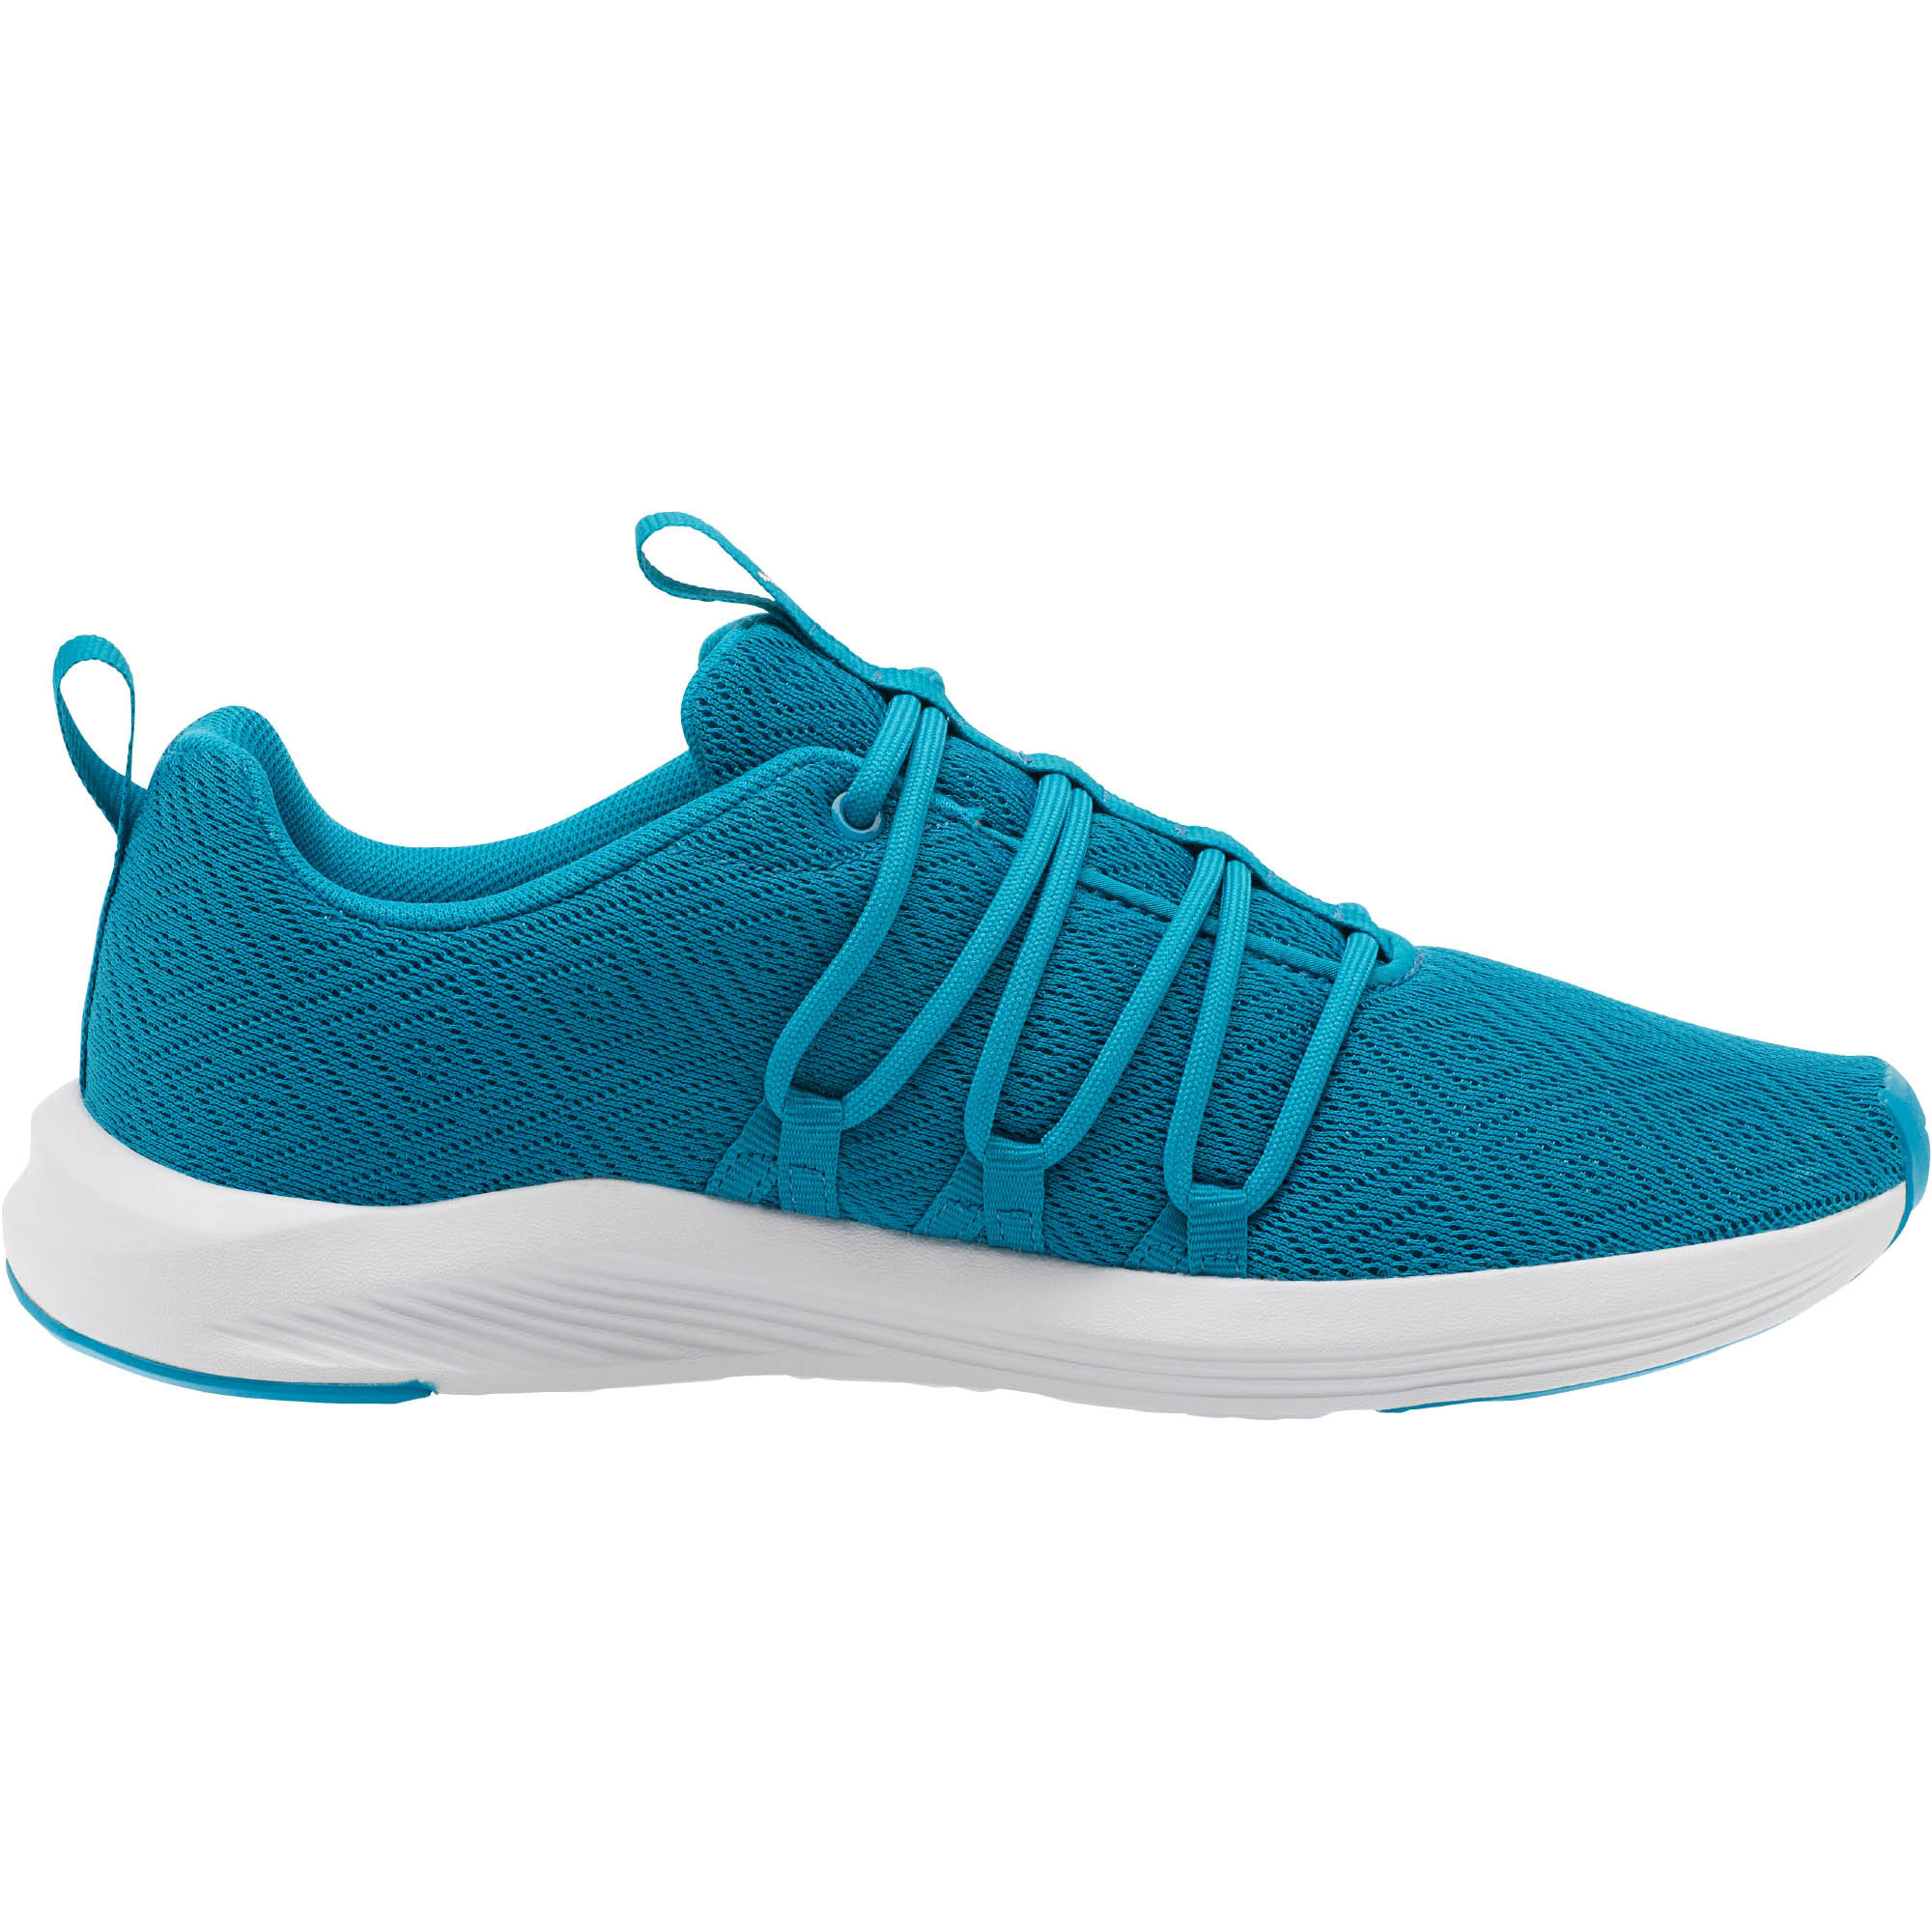 PUMA-Prowl-Alt-Stellar-Women-s-Training-Shoes-Women-Shoe-Training thumbnail 10